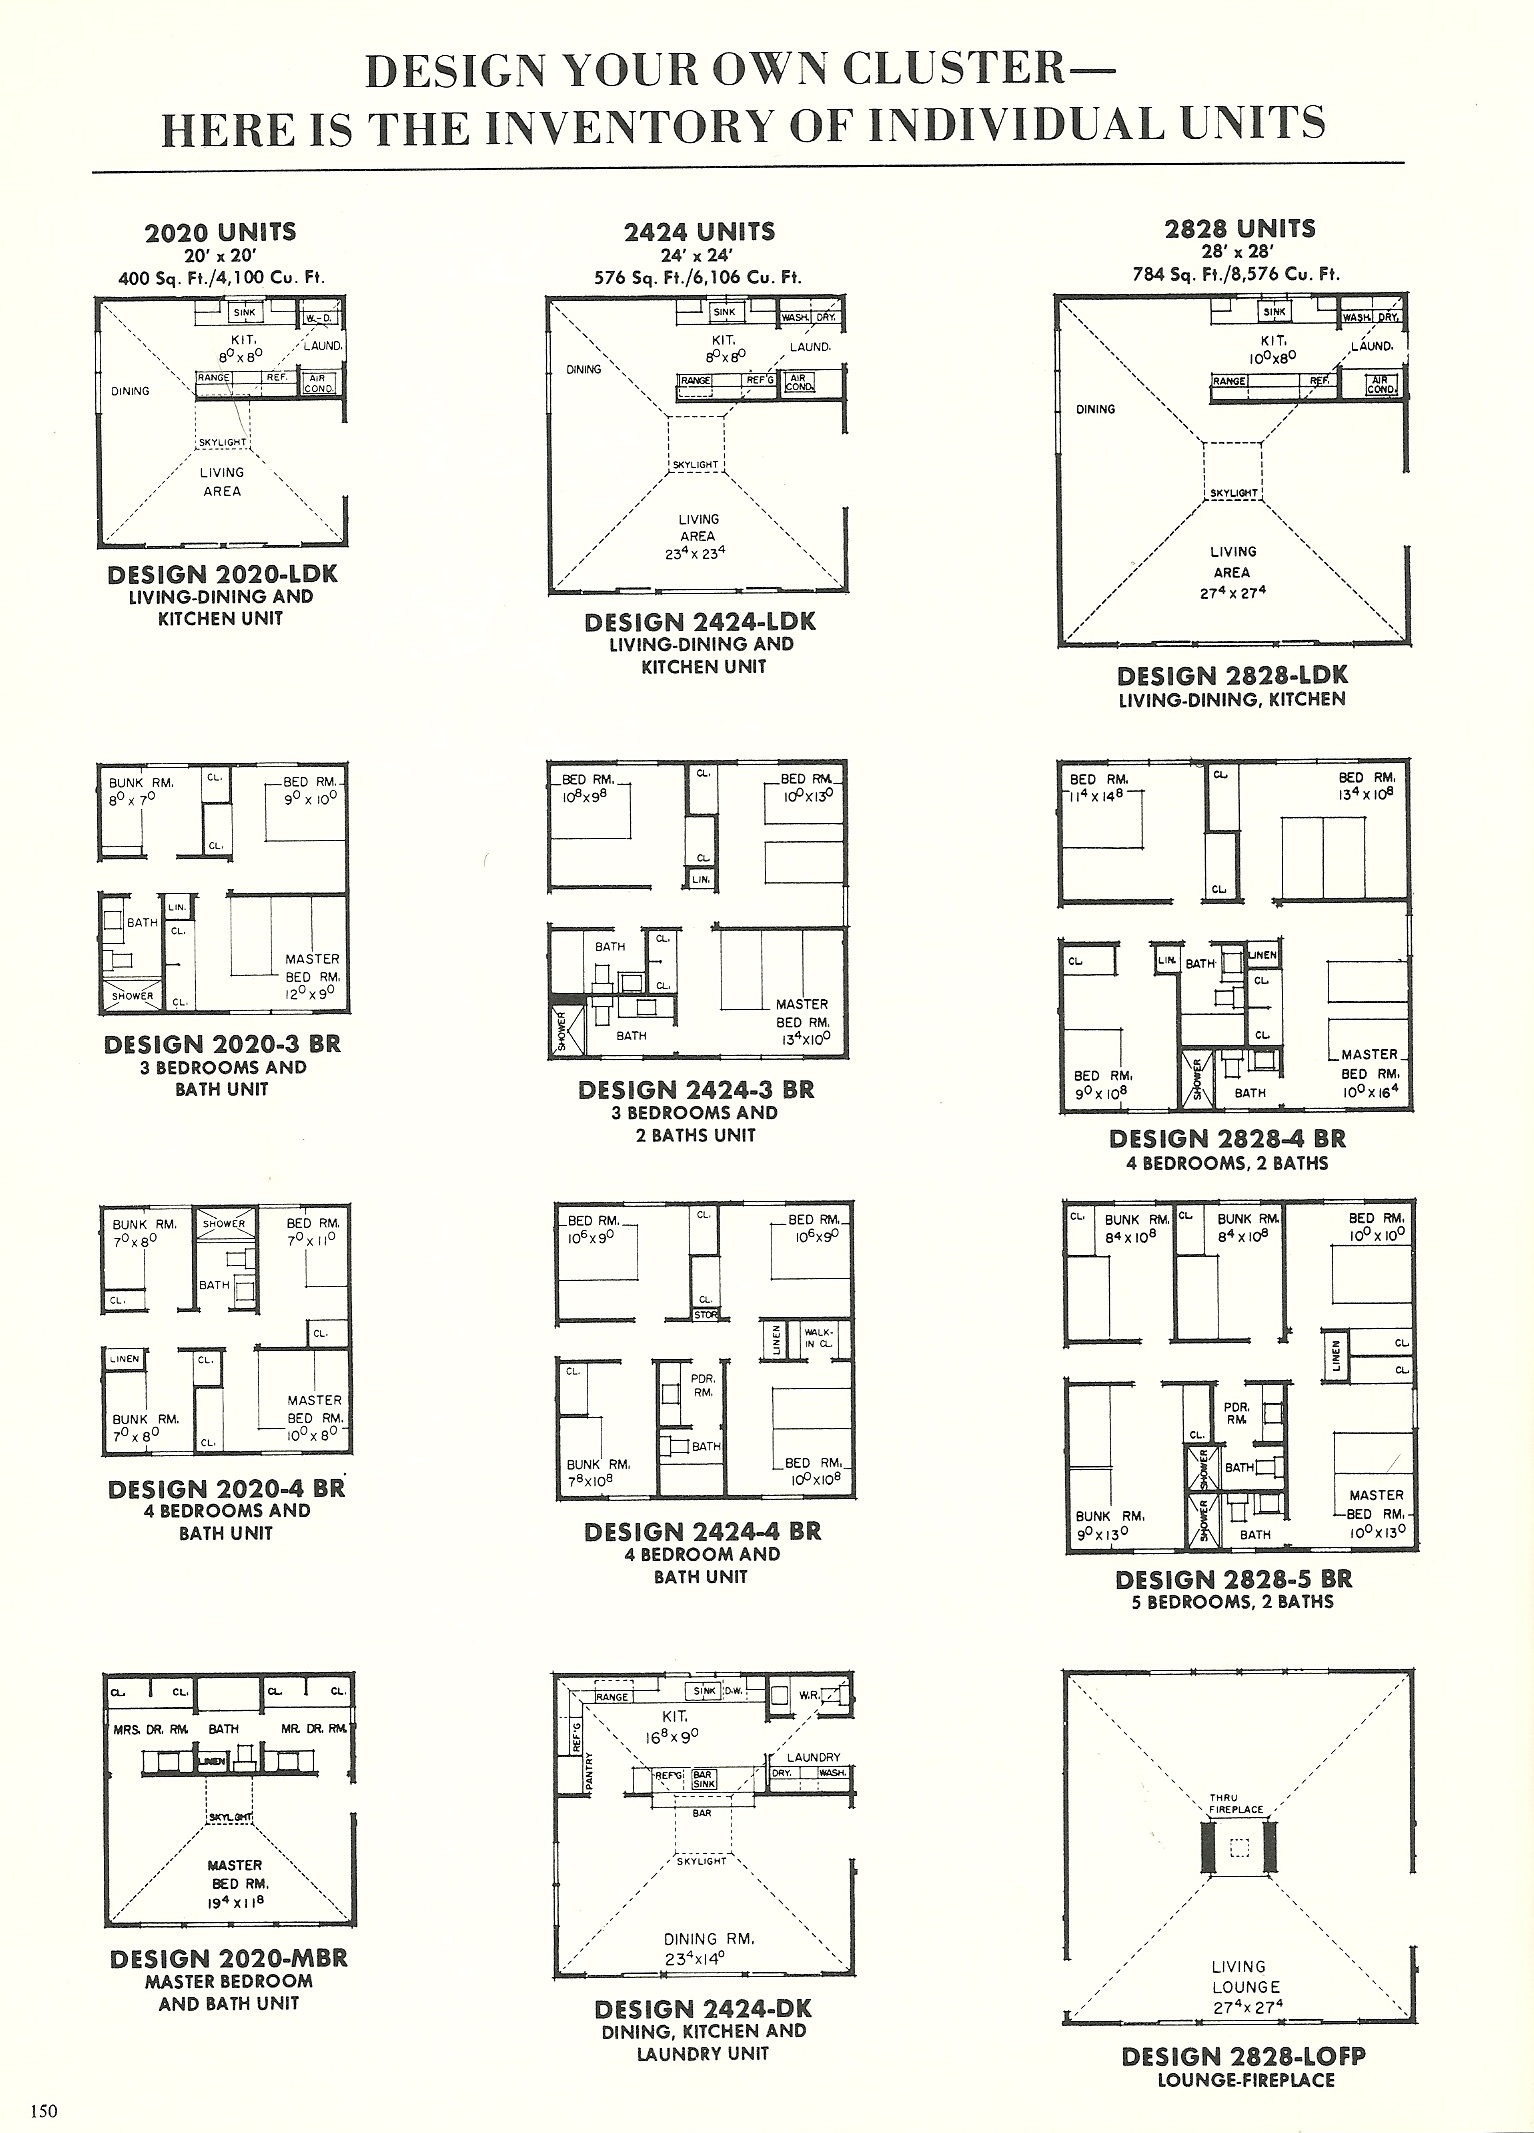 Vintage home plans cluster units 2453a antique alter ego for Cluster home plans